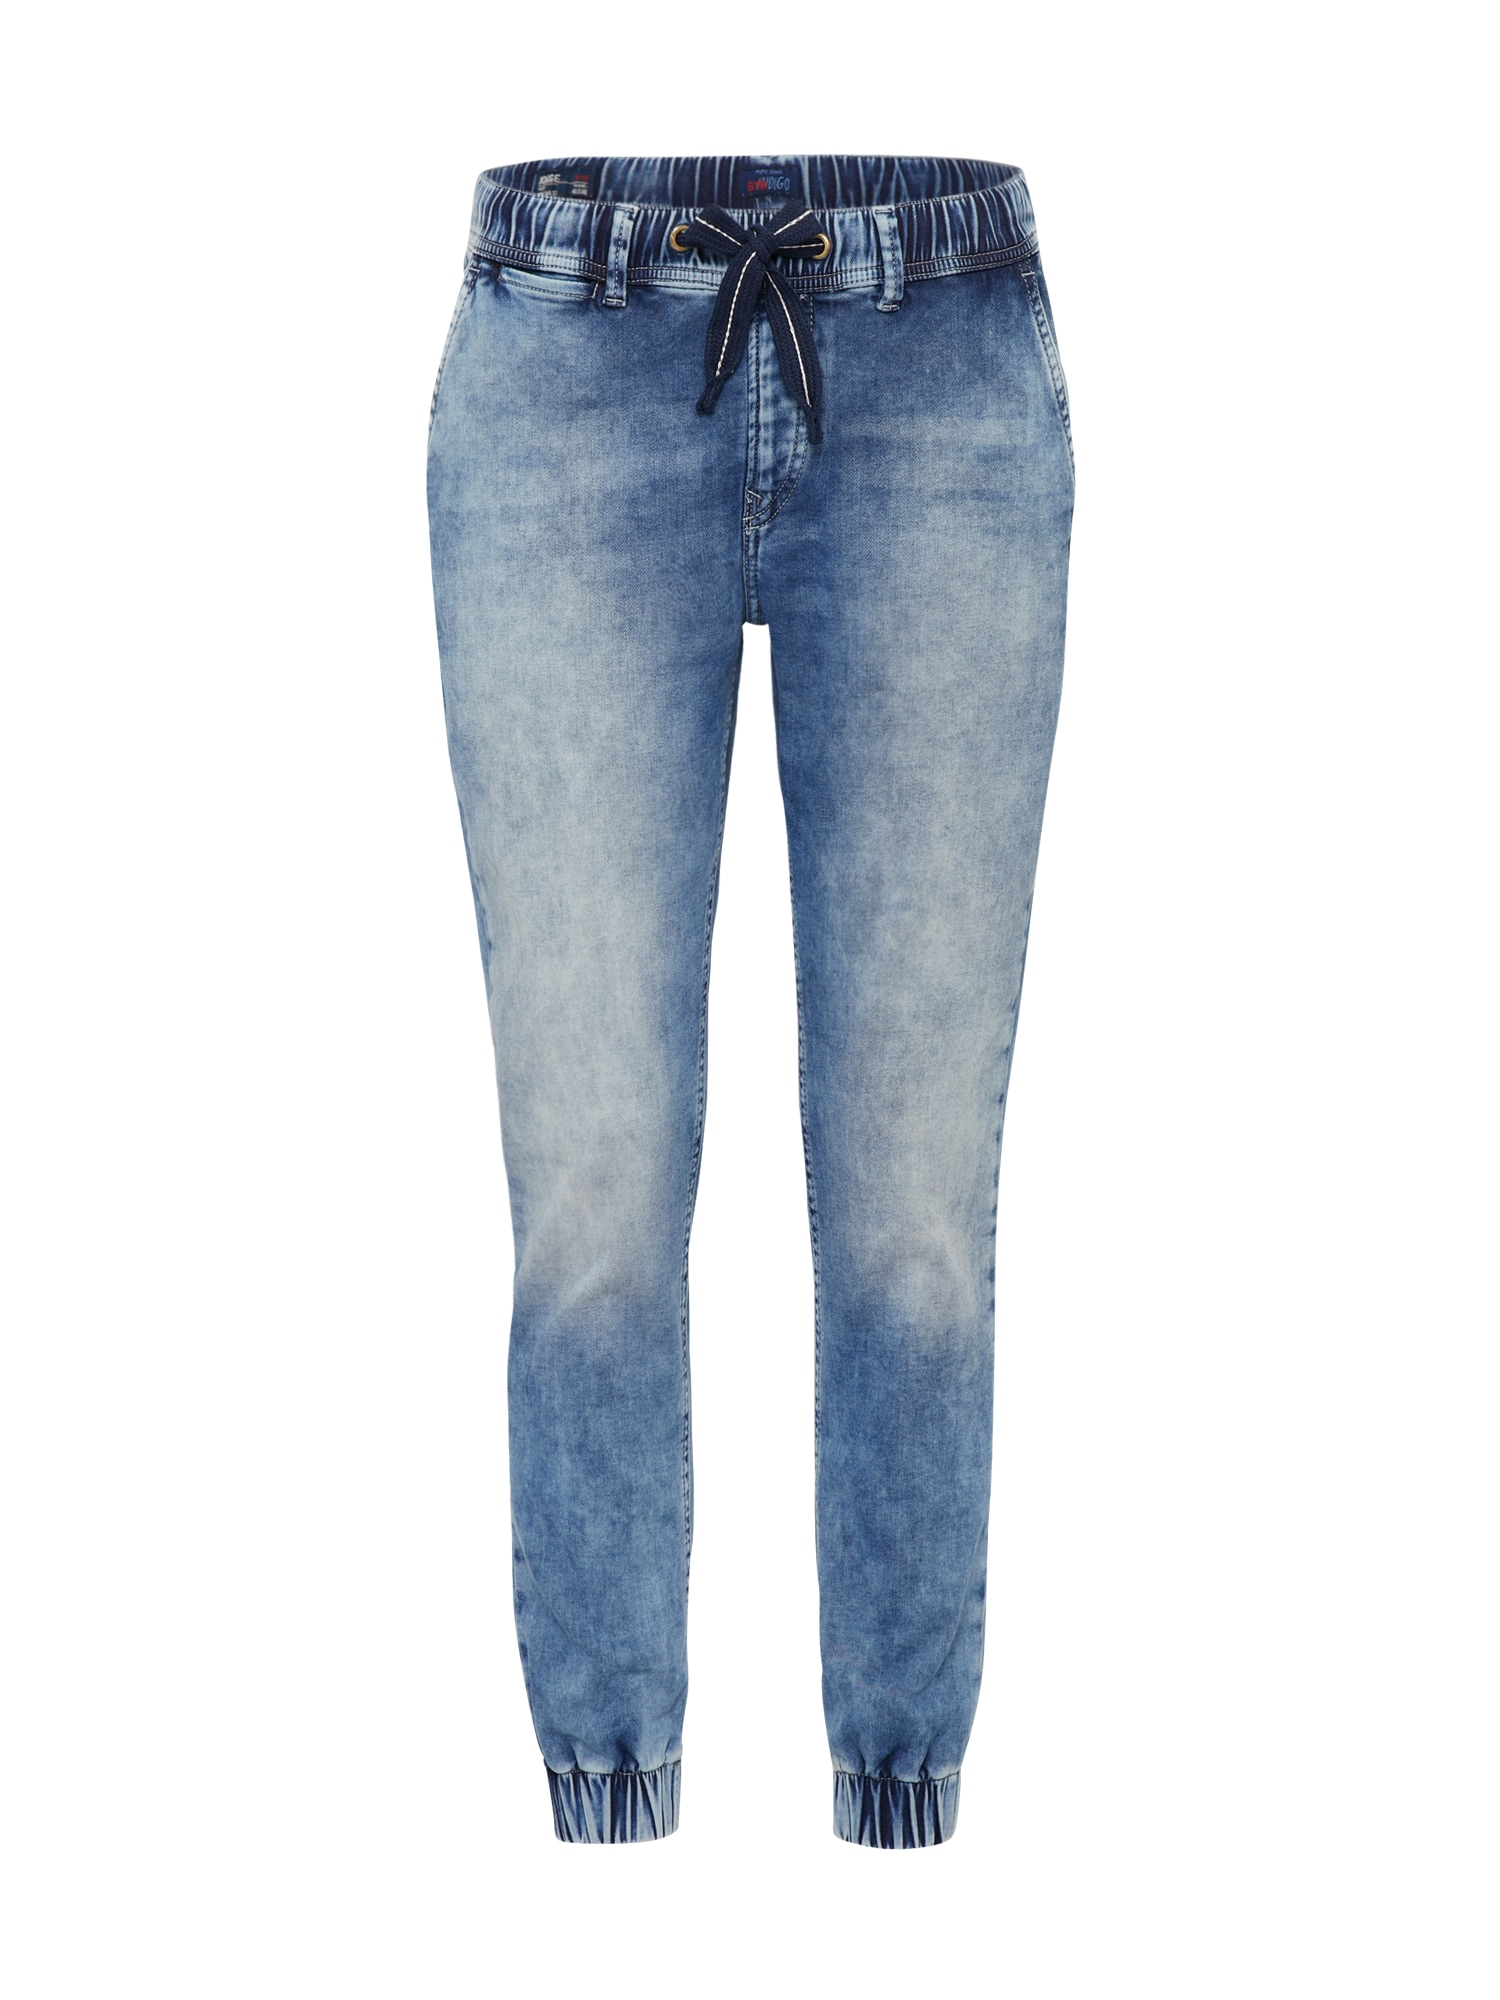 Pepe Jeans Dames Jeans COSIE blauw